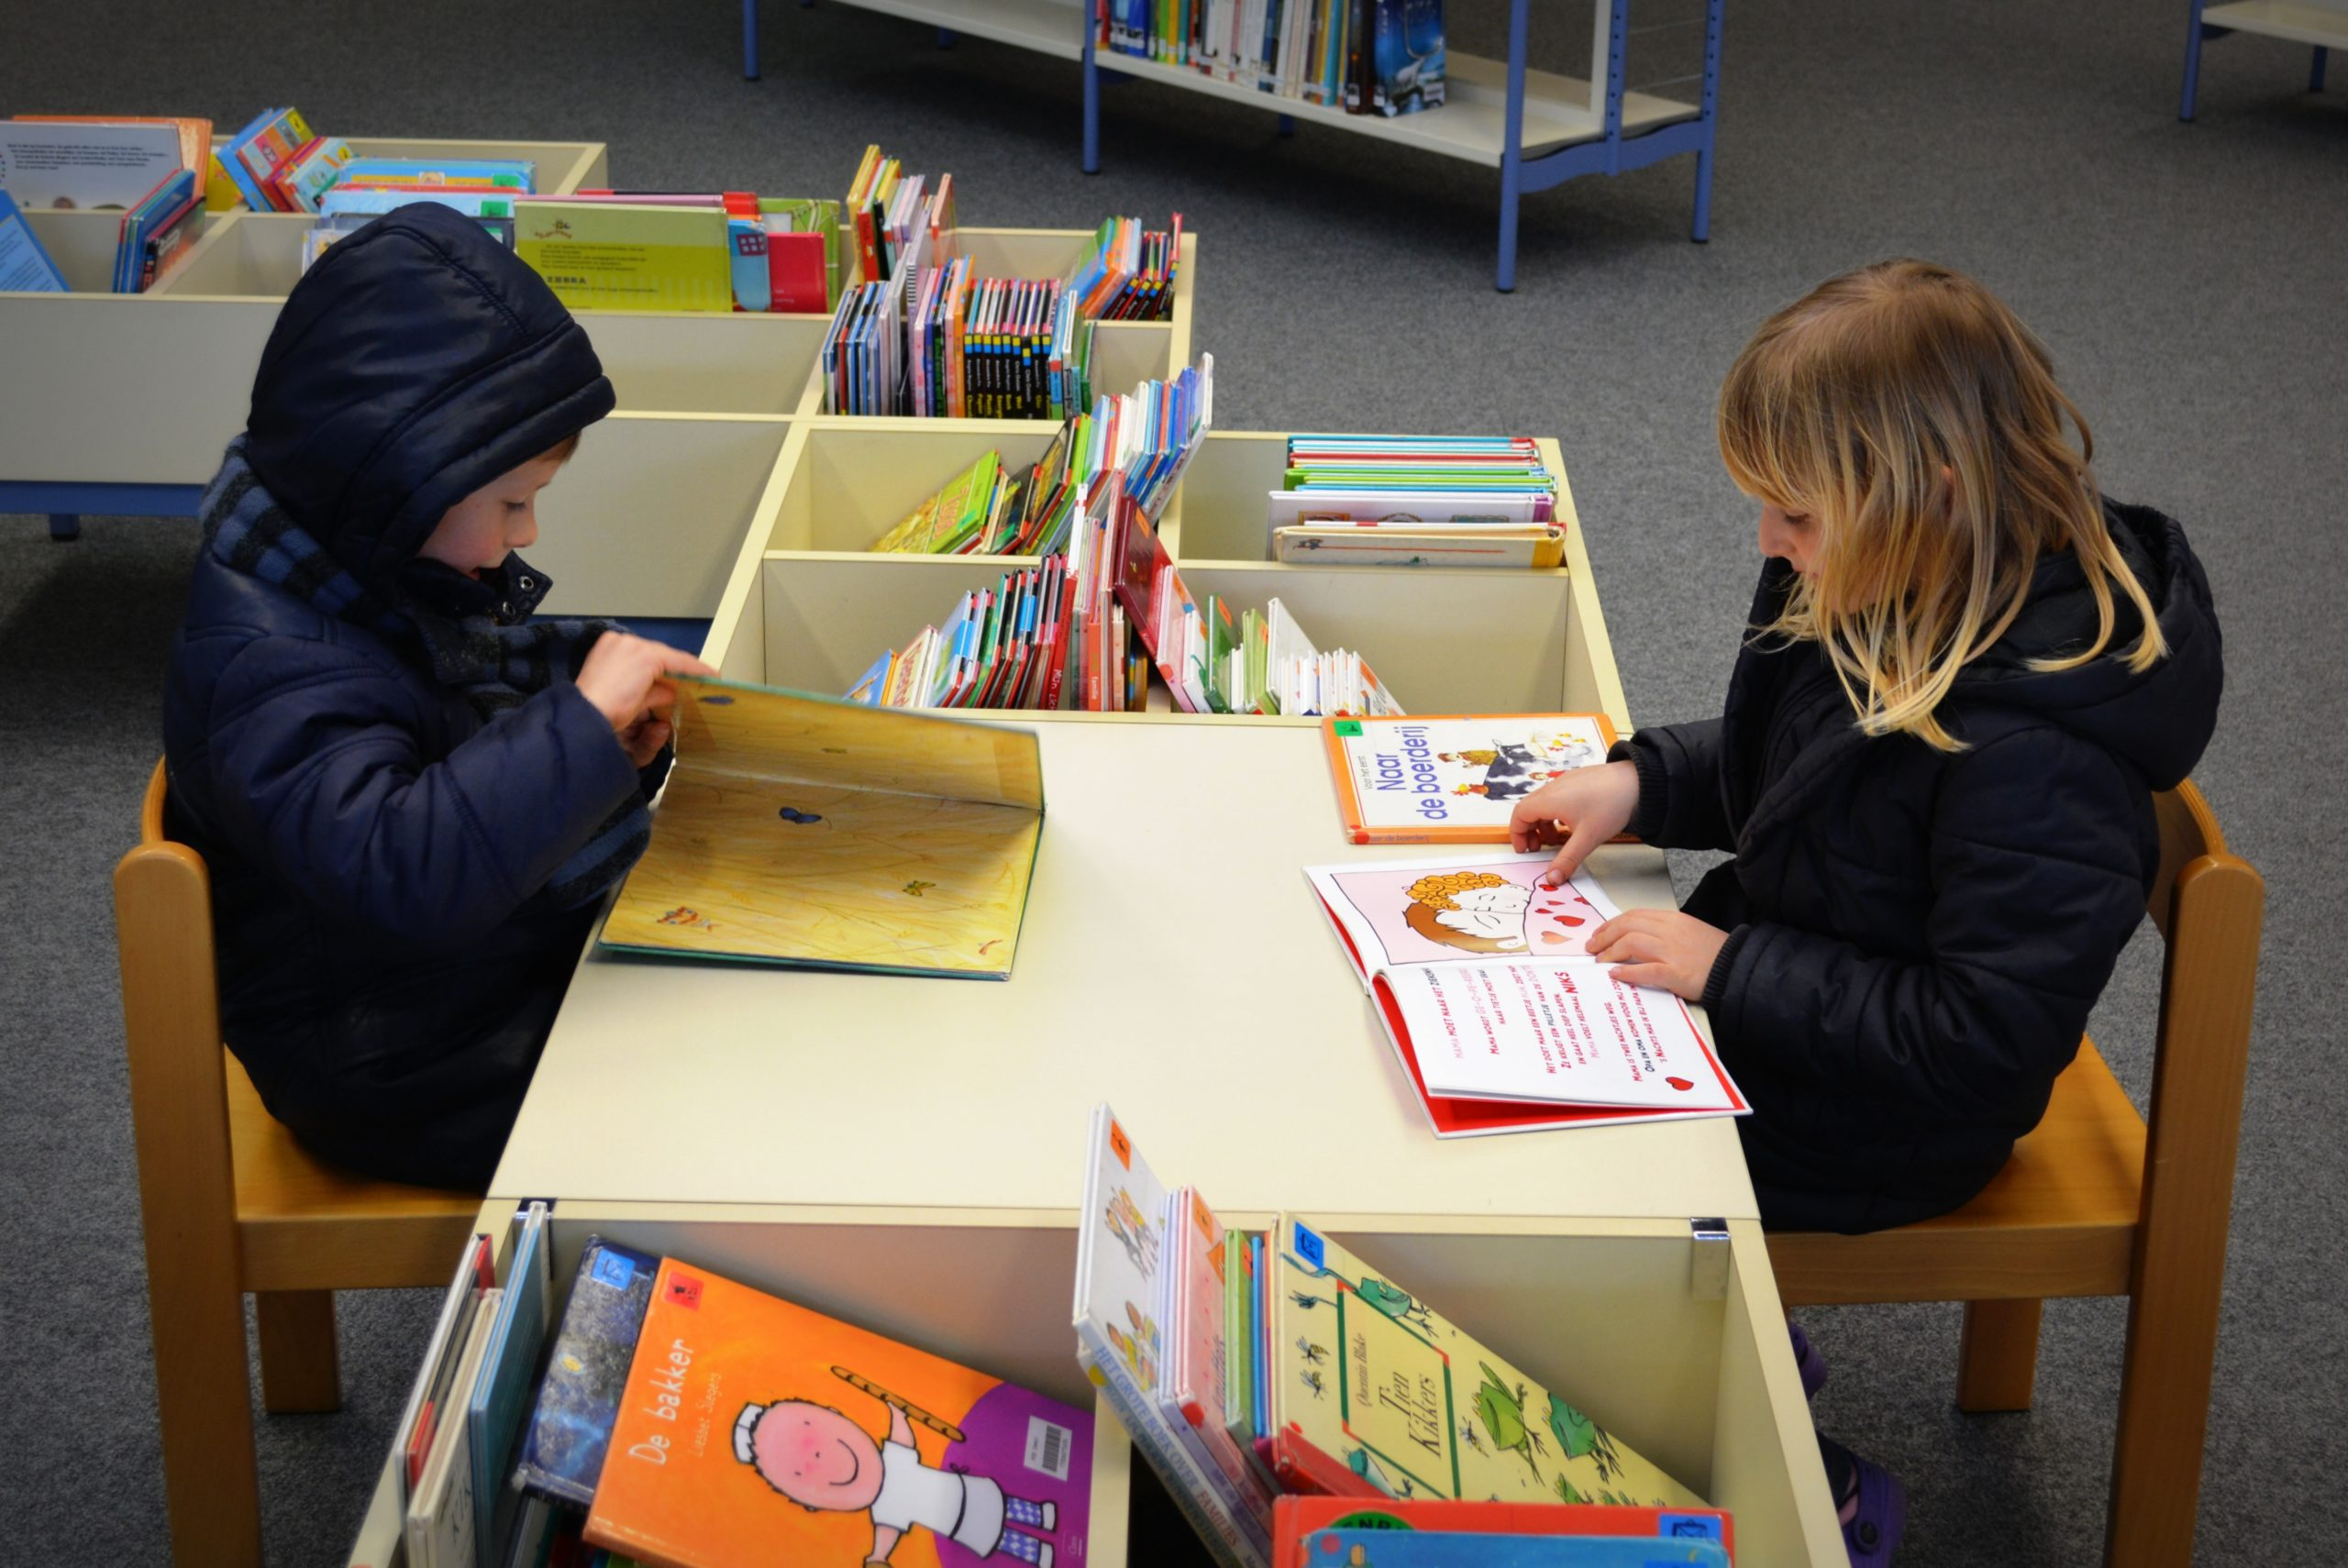 children sitting at book bin table